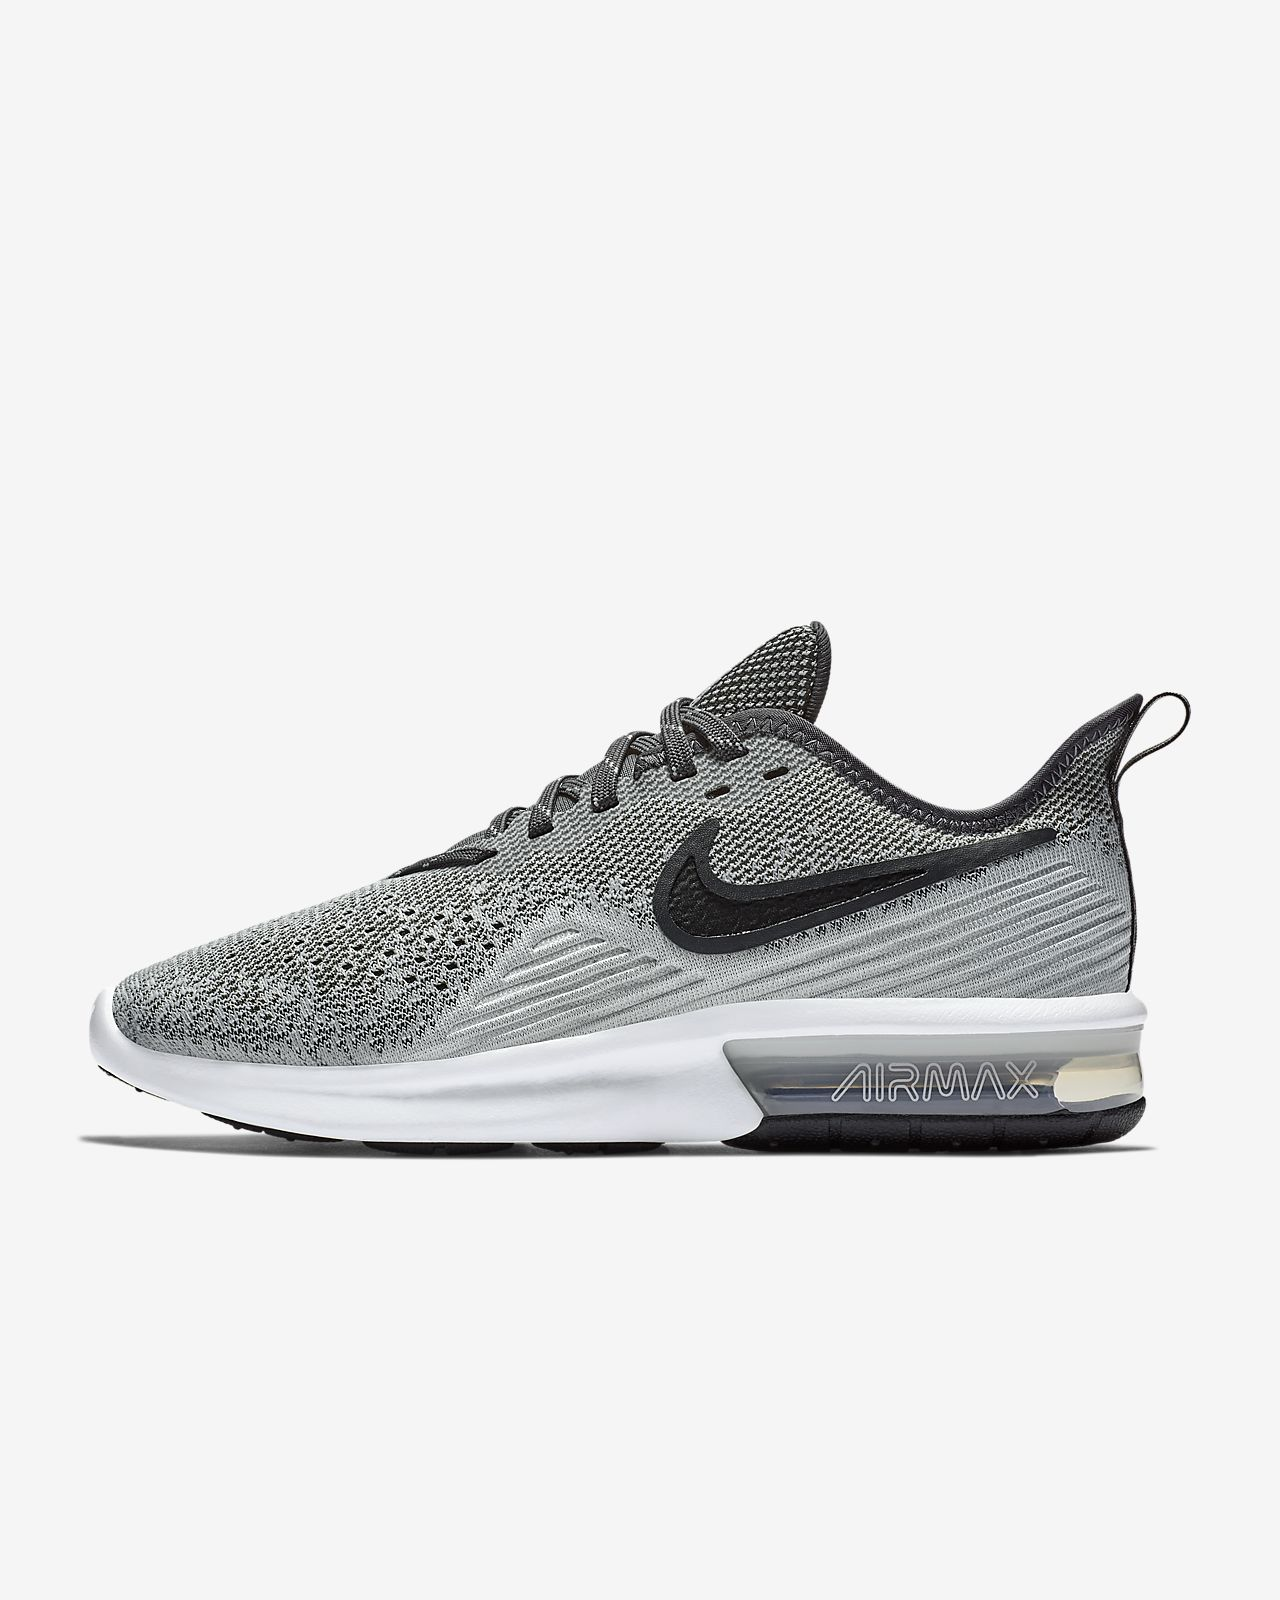 new product 5cdab 82471 ... Nike Air Max Sequent 4 Women s Shoe